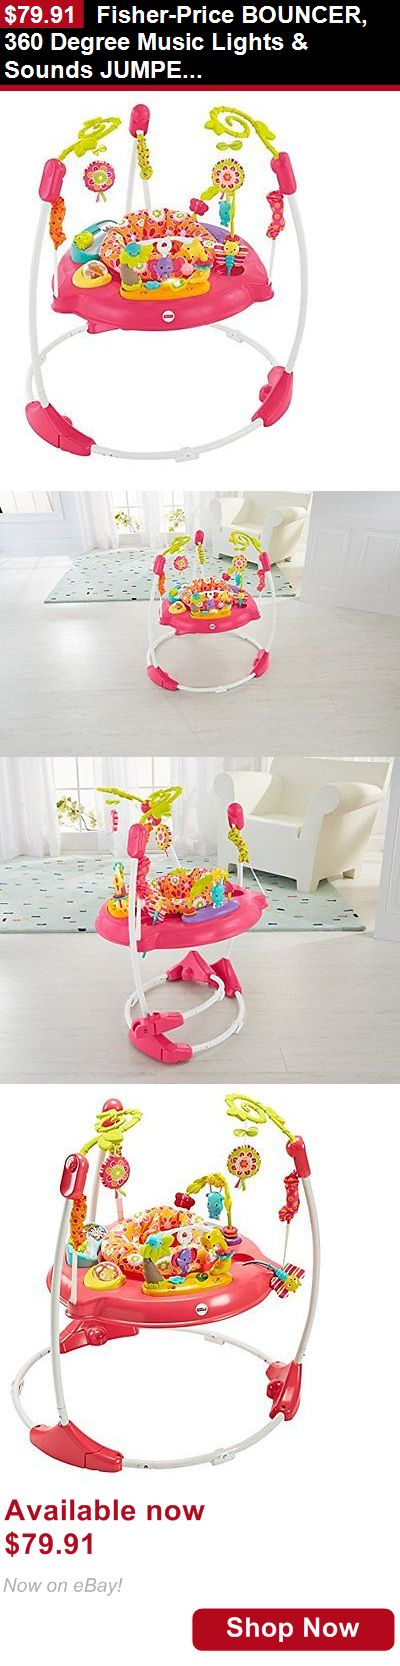 Baby bouncers and vibrating chairs: Fisher-Price Bouncer, 360 Degree Music Lights And Sounds Jumperoo, Pink Petals BUY IT NOW ONLY: $79.91